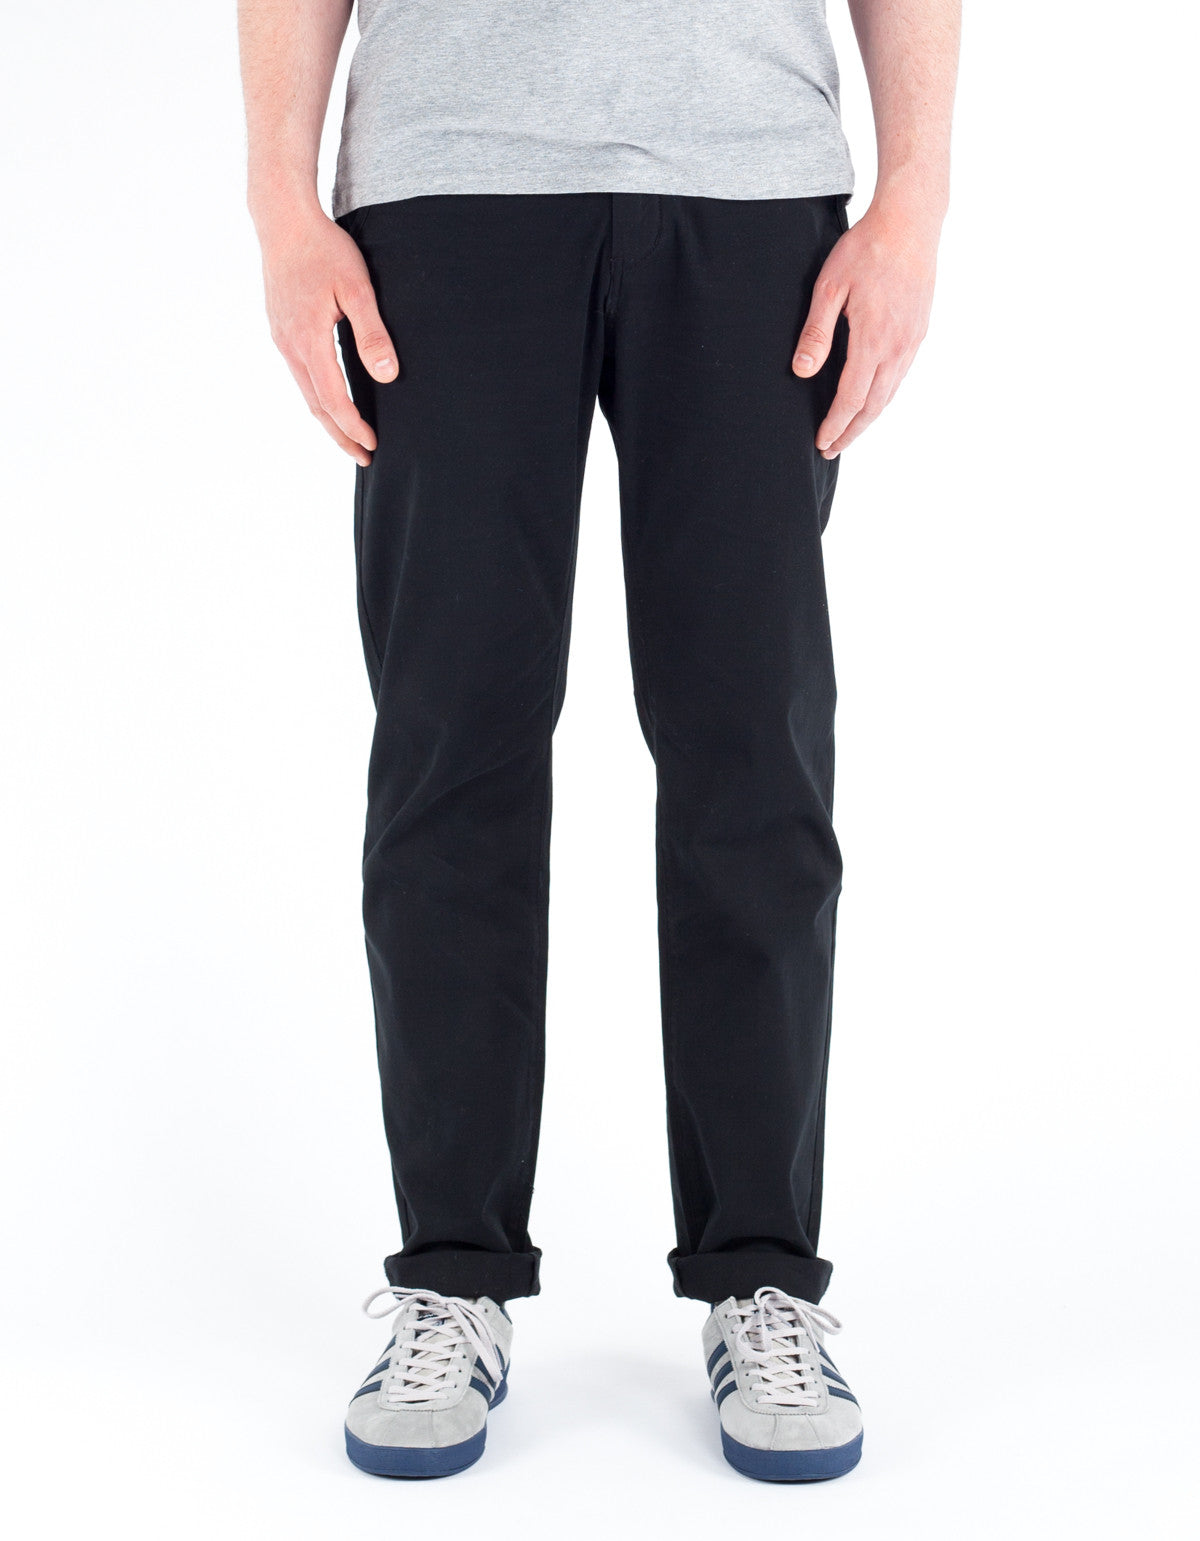 The Daily Co. Relaxed Chino Rich Black